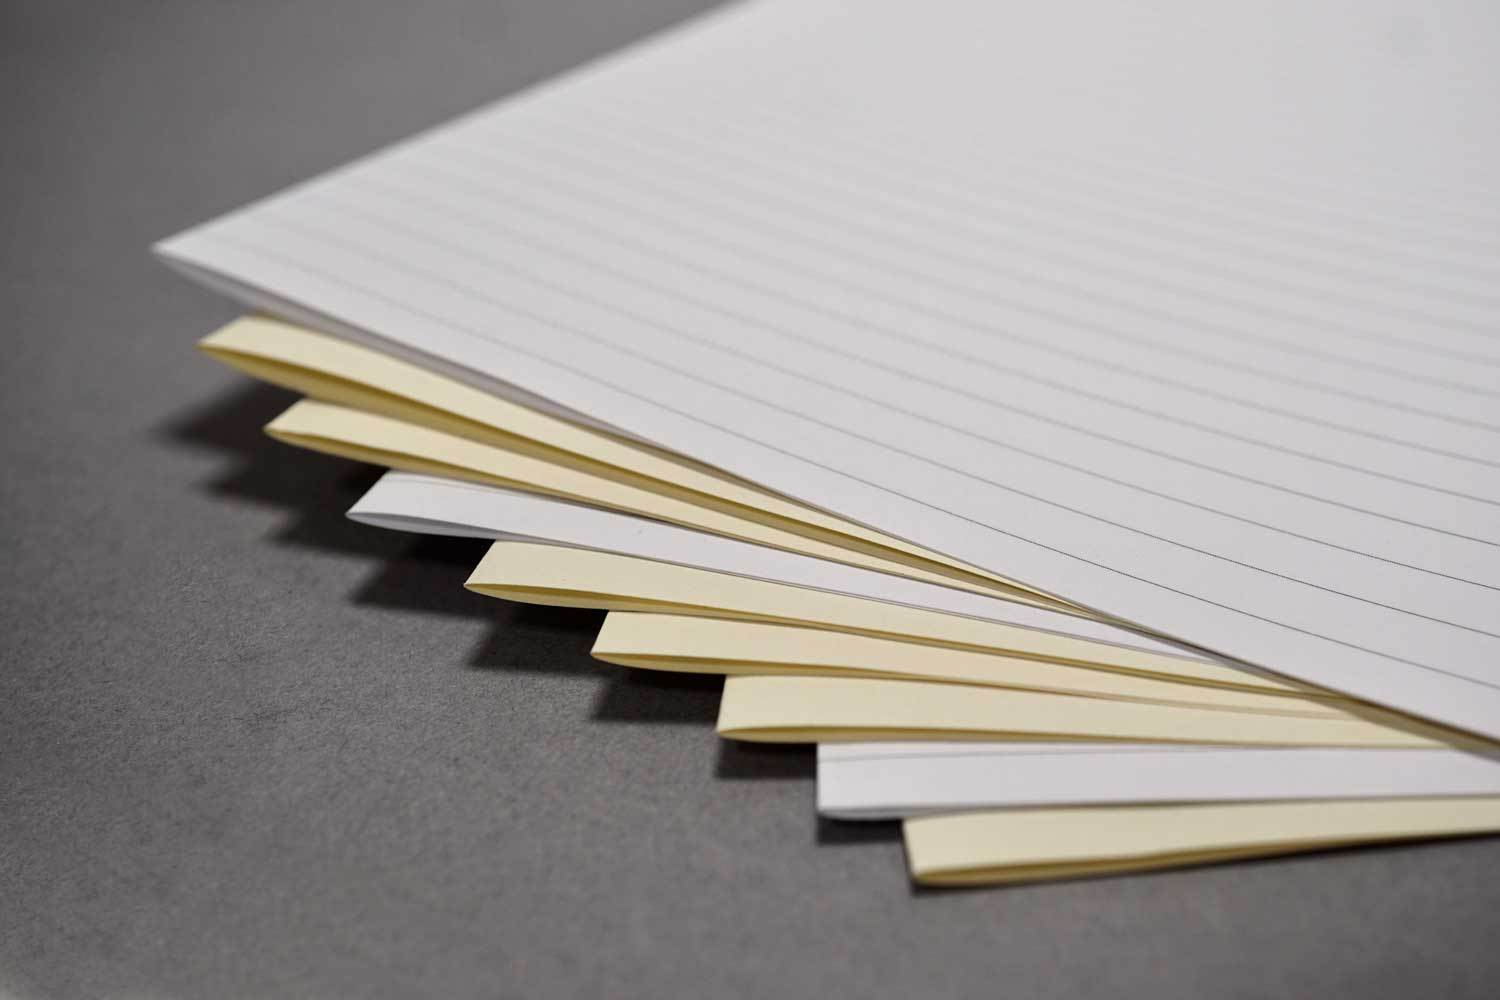 Short grain cream bookbinding paper from Bookshell bindery, cream or white with blank or lined pages